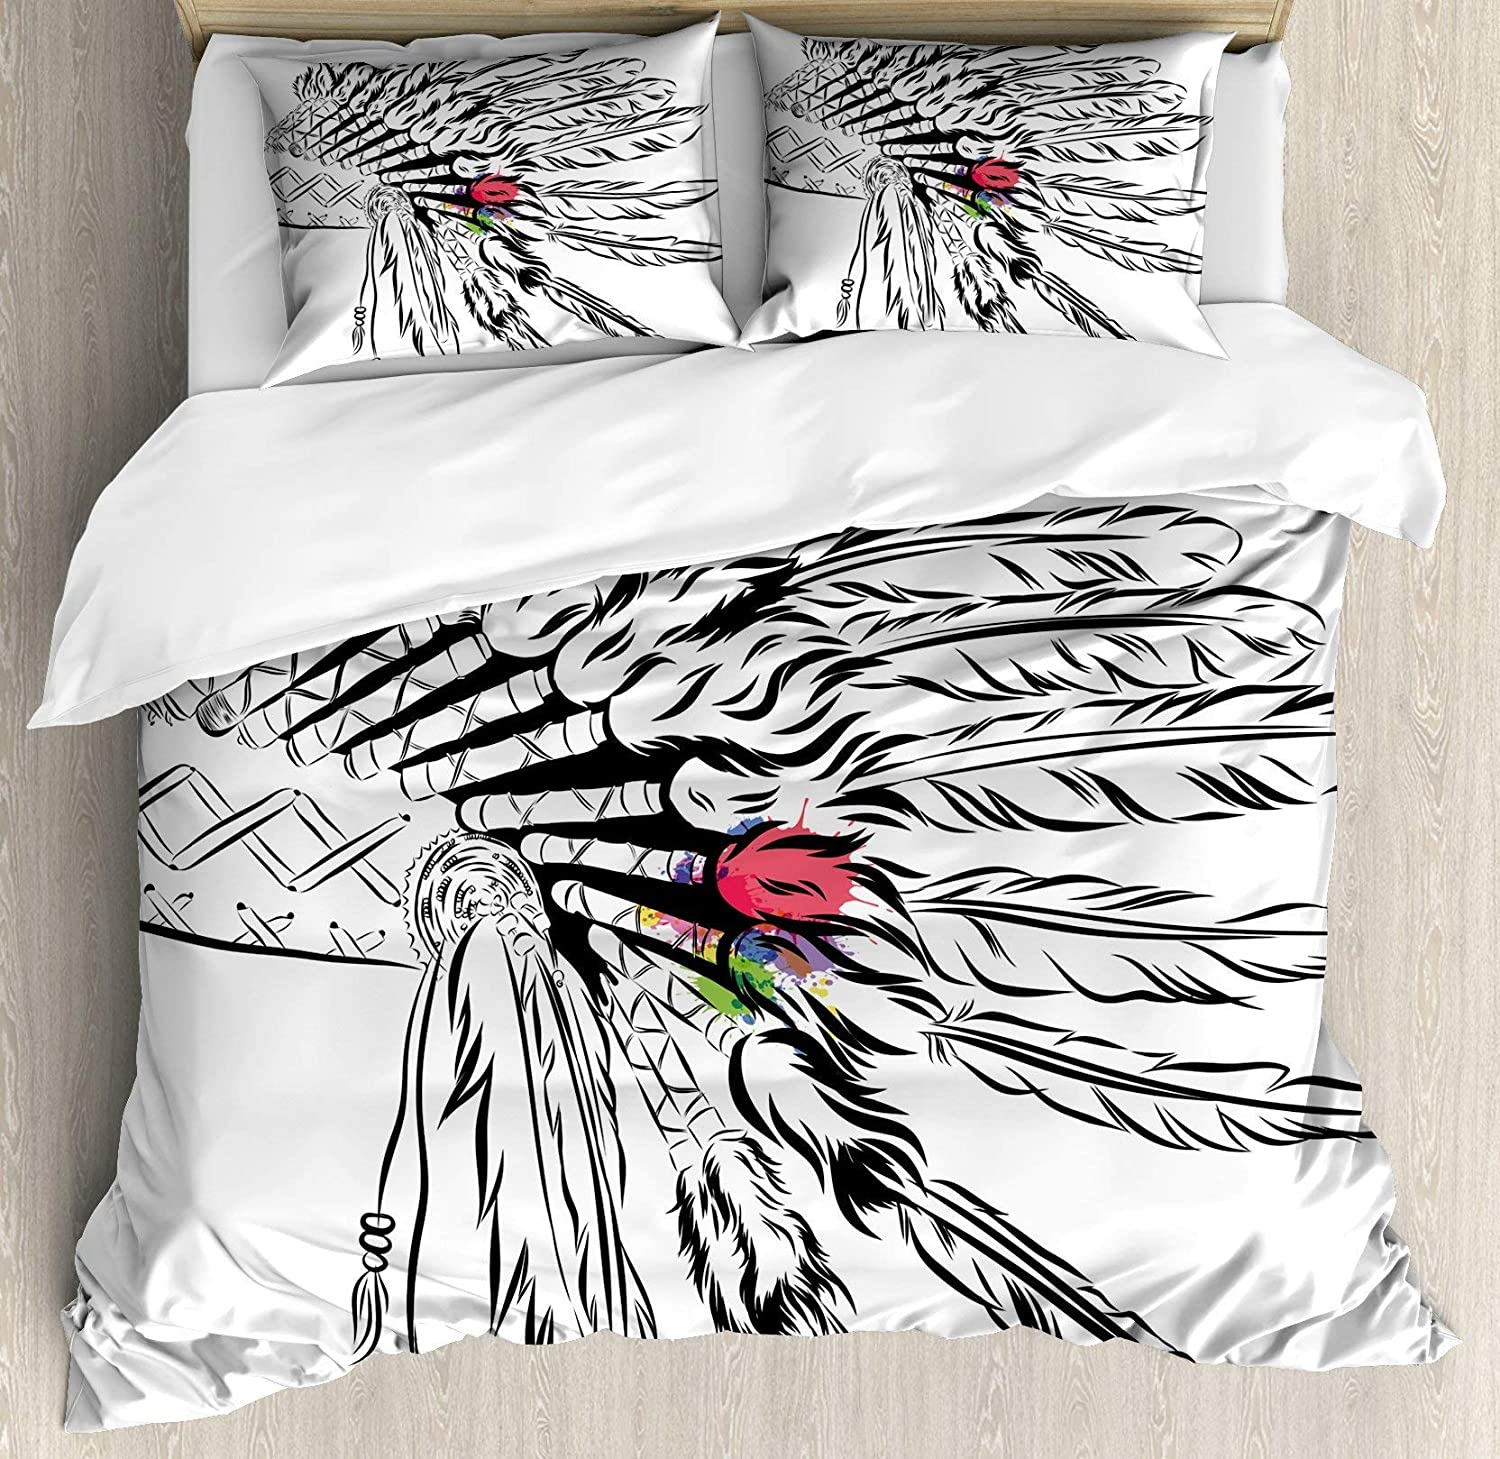 USOPHIA Feather 4 Pieces Bed Sheets Set Full Size, Native American Headdress in Sketch Style with color Splashes Primitive Floral Duvet Cover Set, Black White Multicolor